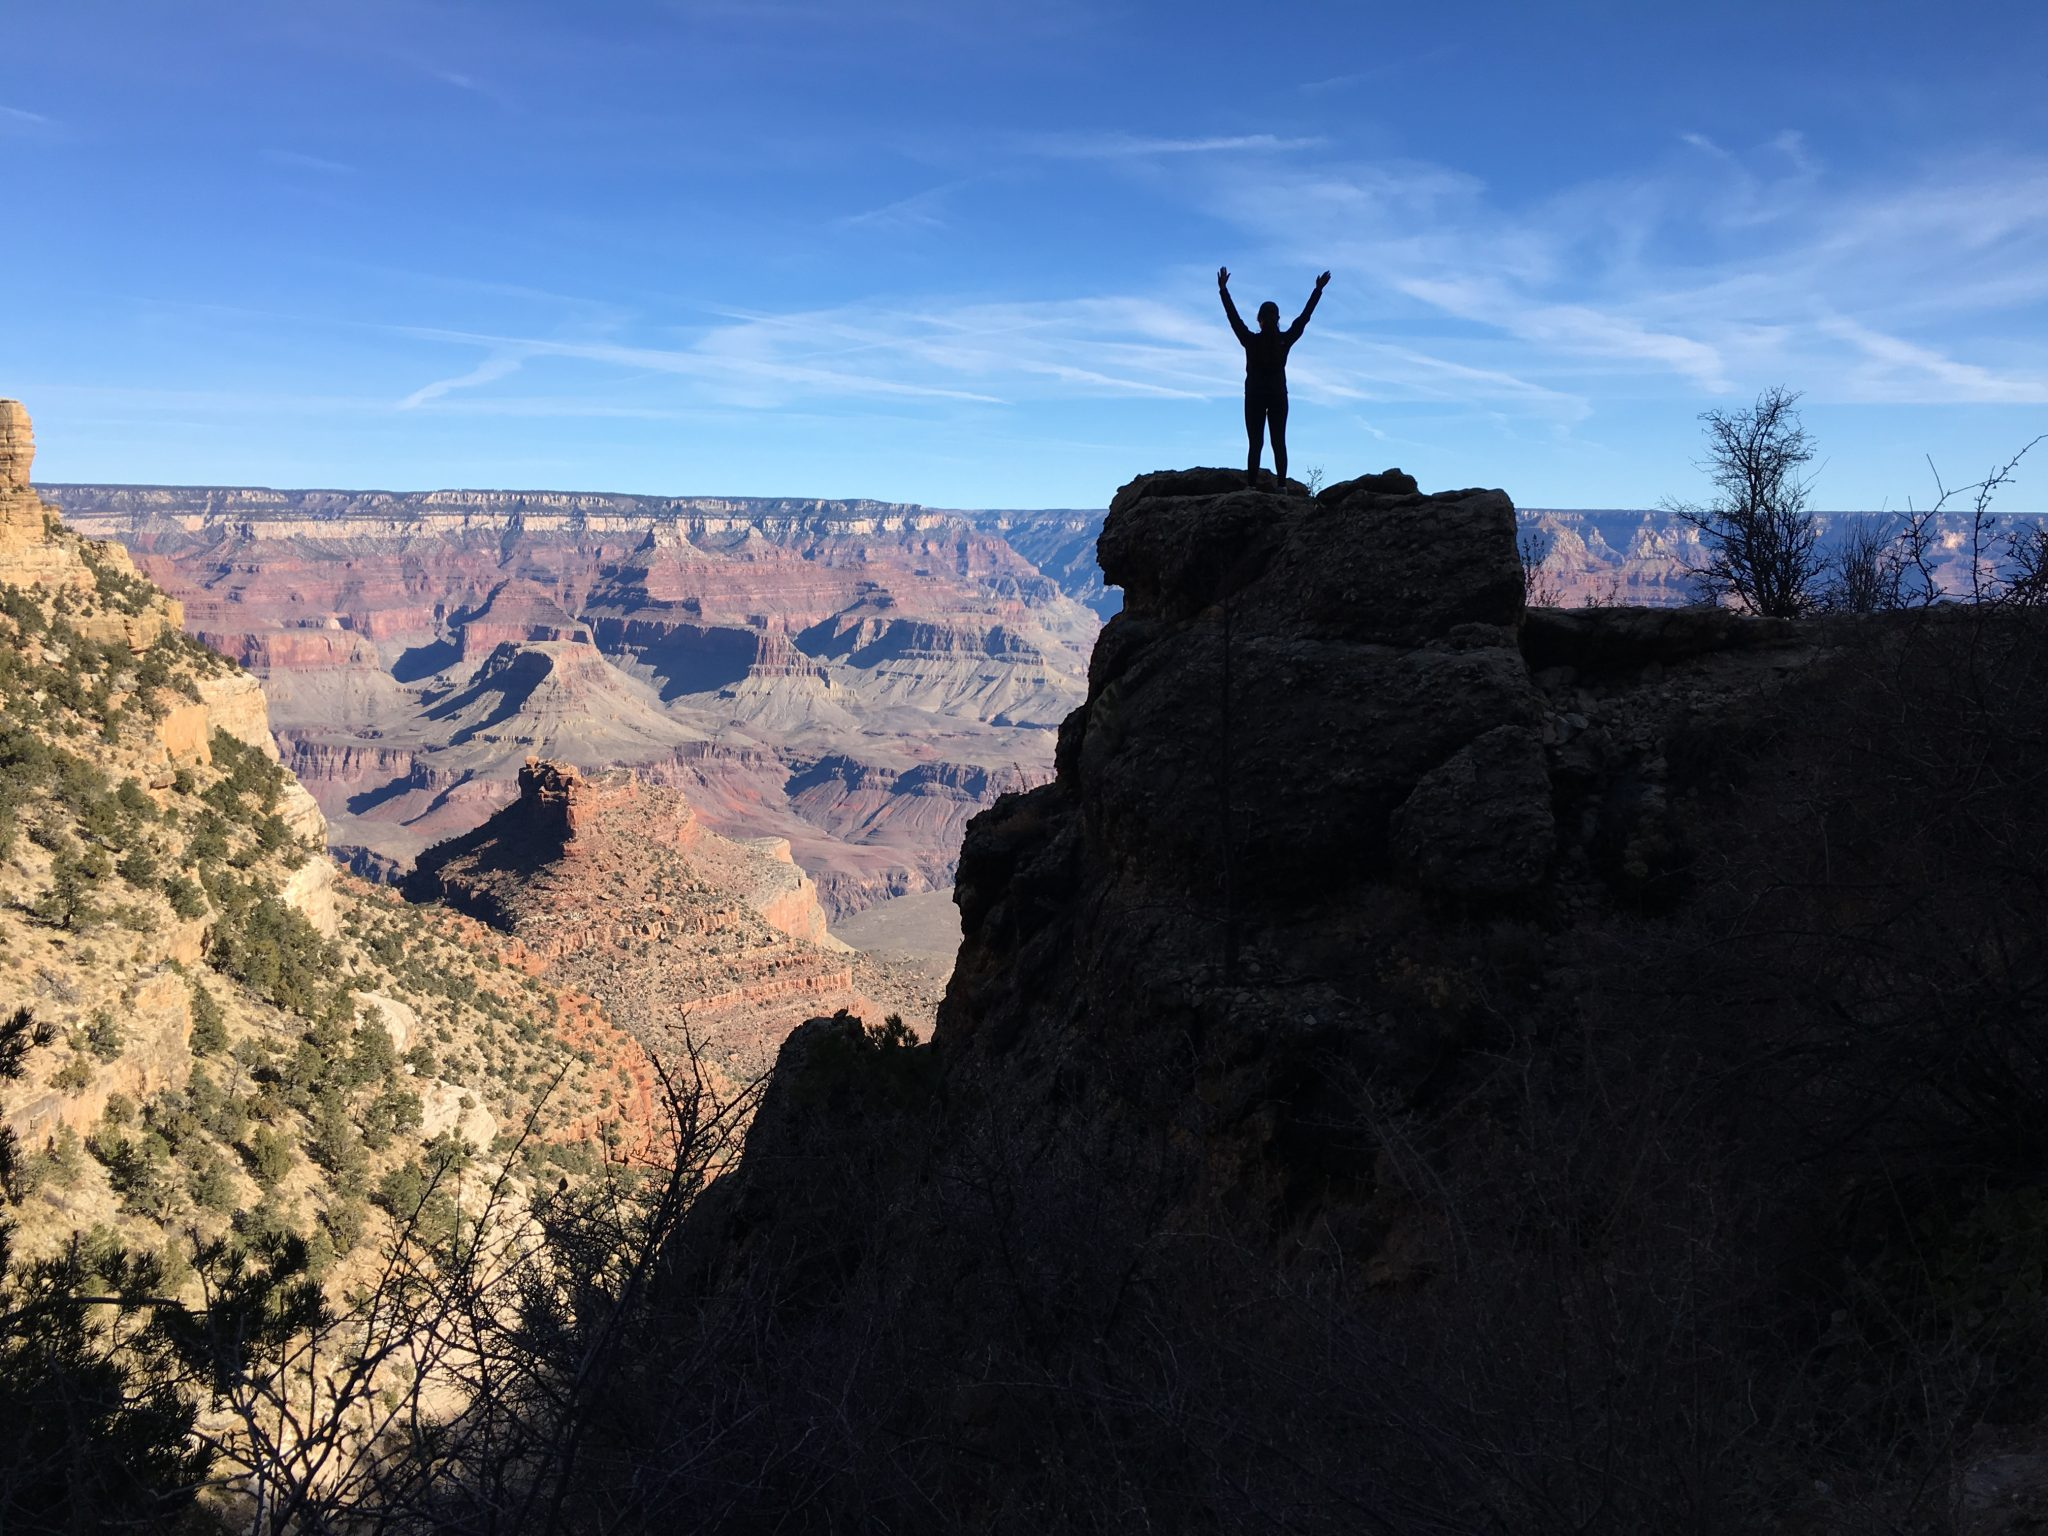 From Vegas To Phoenix In 48 Hours: The Ultimate Grand Canyon Road Trip